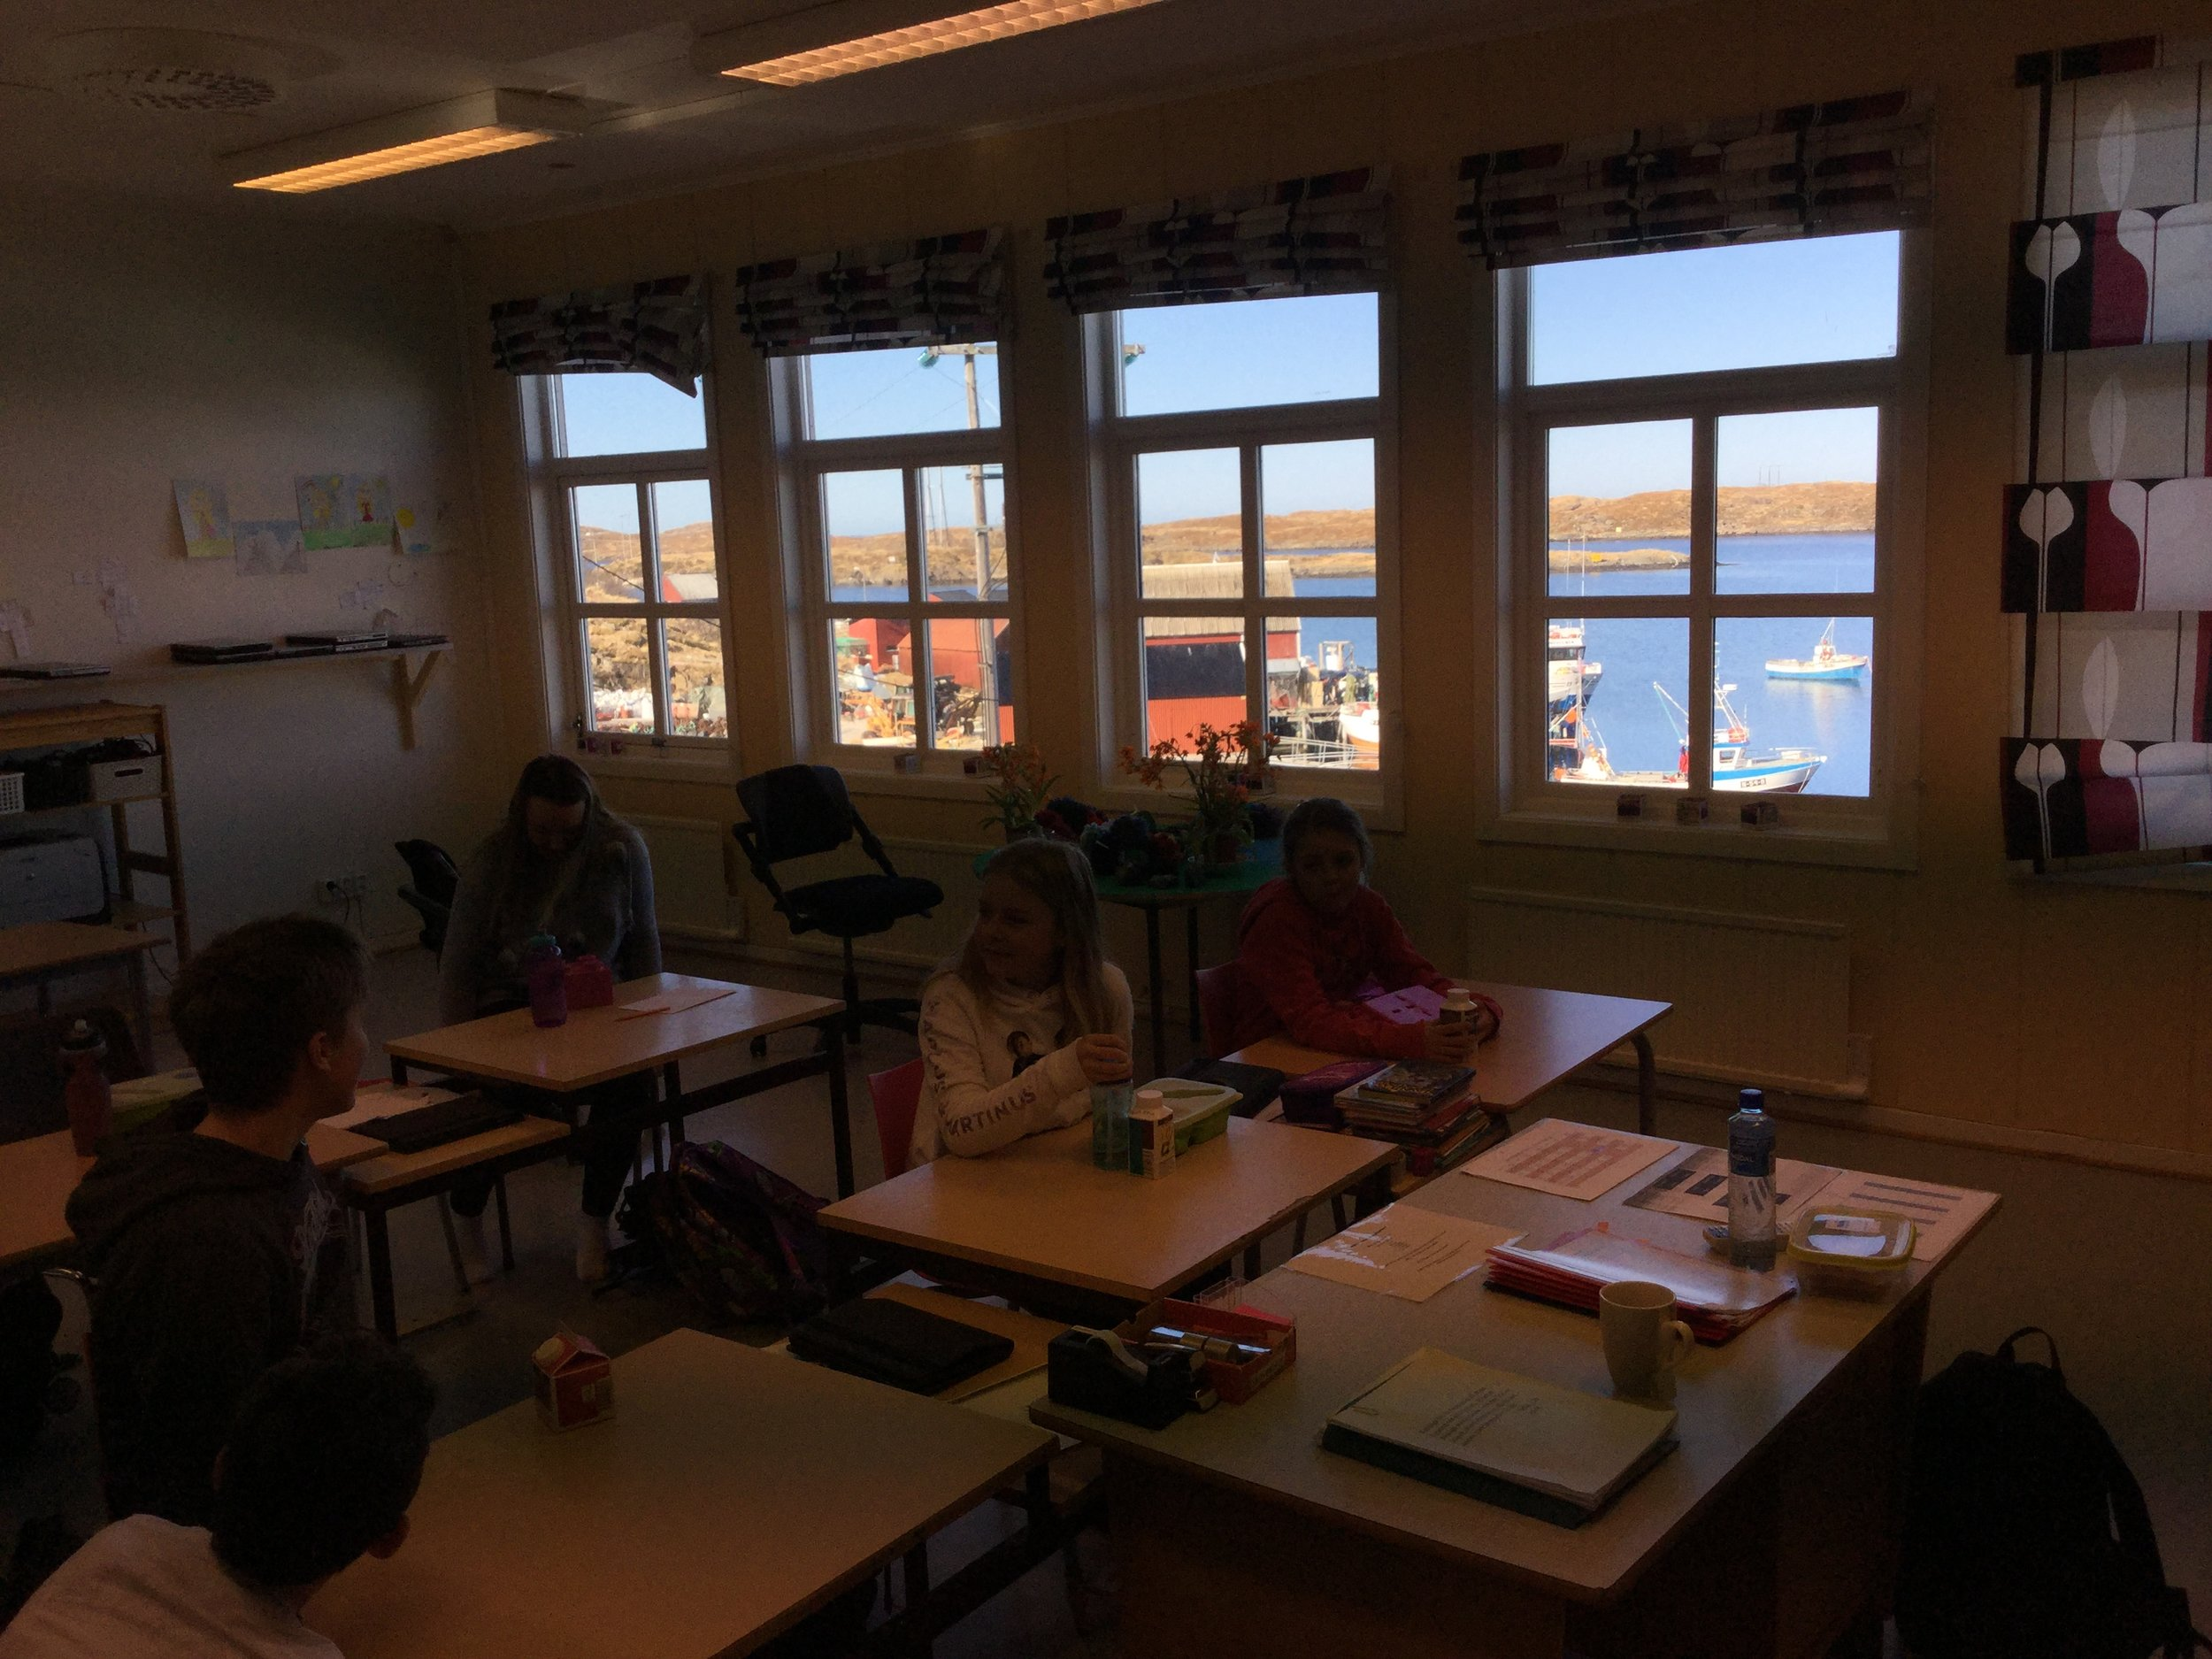 This 5-10 grade classroom overlooks the harbor, and is just across a path from the ferry dock. Each pupil has an iPad, the classroom has high-speed internet, AppleTV and a SmartBoard! We spent the morning here learning about a typical day in the life of a teenager in Vermont, and reading letters from American teens. We also learned about how the Norwegian government and NASA have been working together on space exploration lately, as they have been studying astronomy in science class.